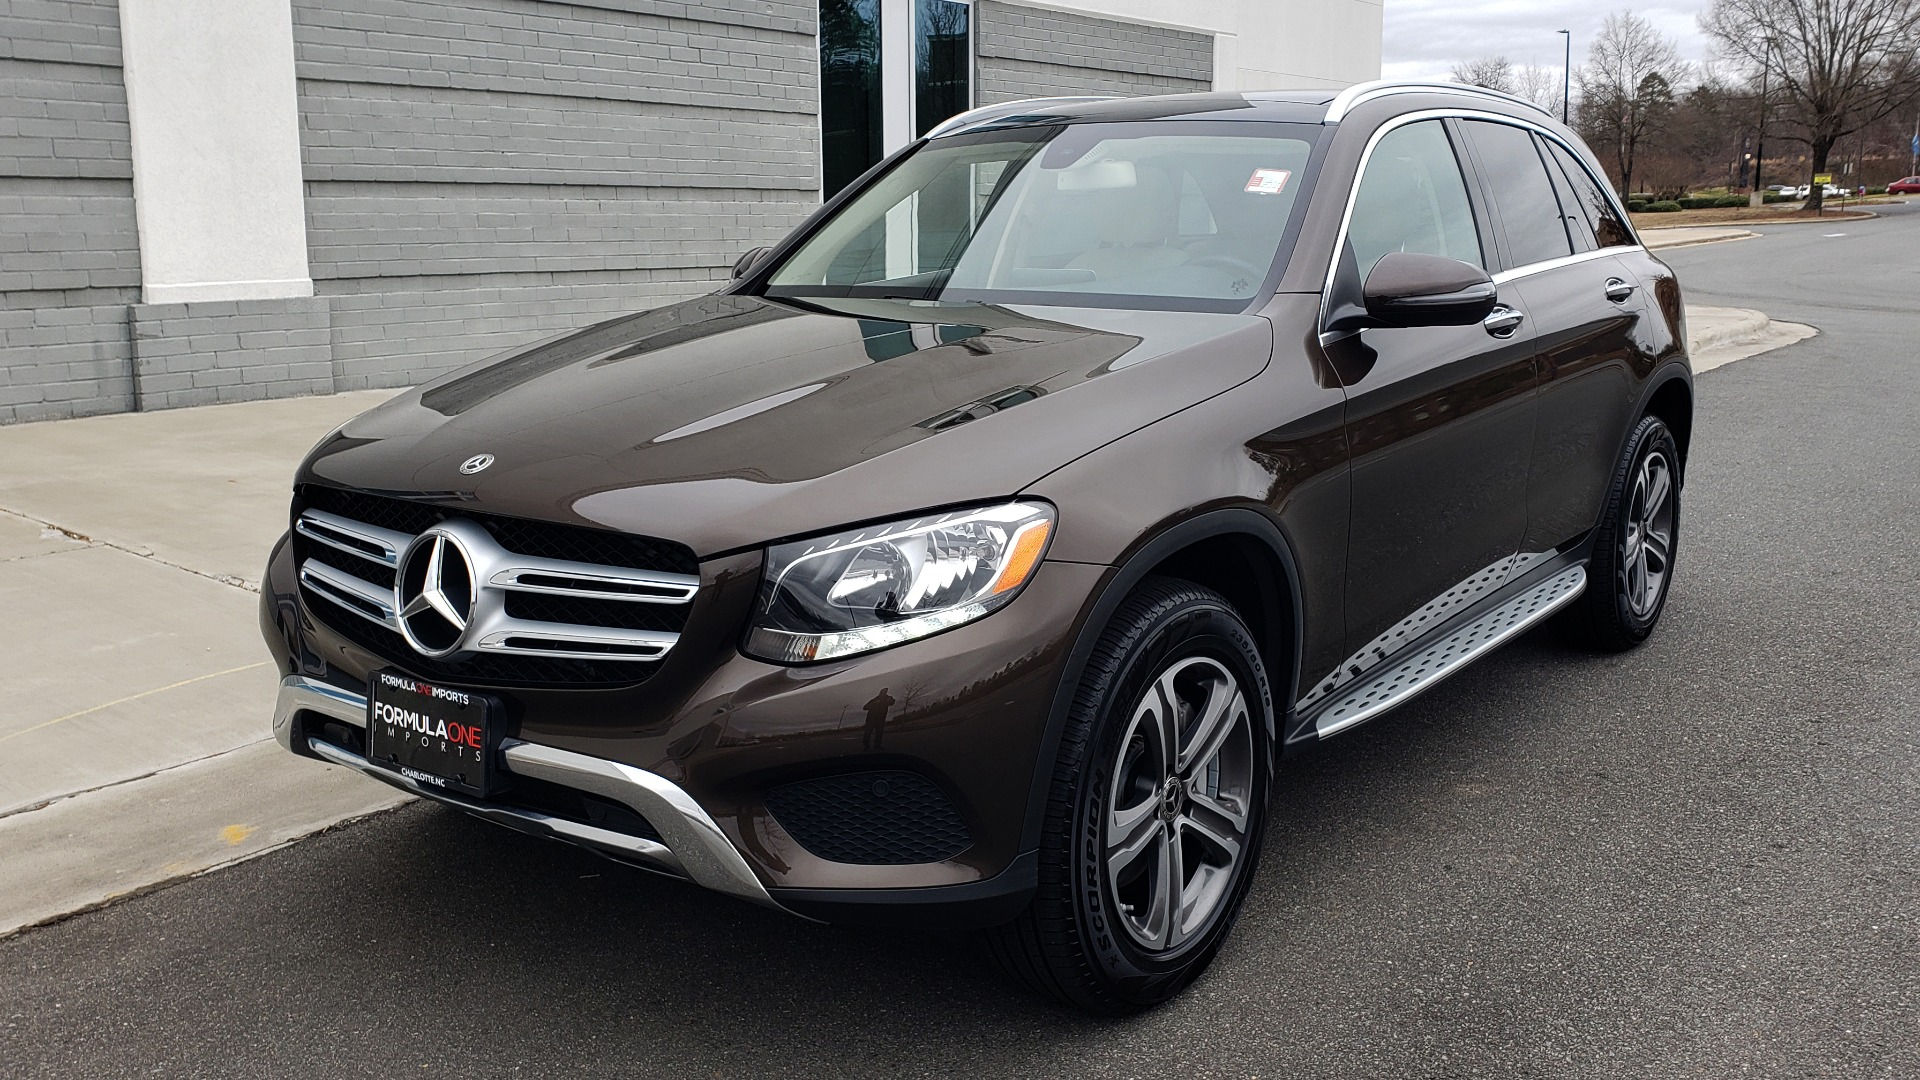 Used 2018 Mercedes-Benz GLC 300 4MATIC / PREM PKG / MULTIMEDIA / PANO-ROOF / BURMESTER for sale $33,995 at Formula Imports in Charlotte NC 28227 1